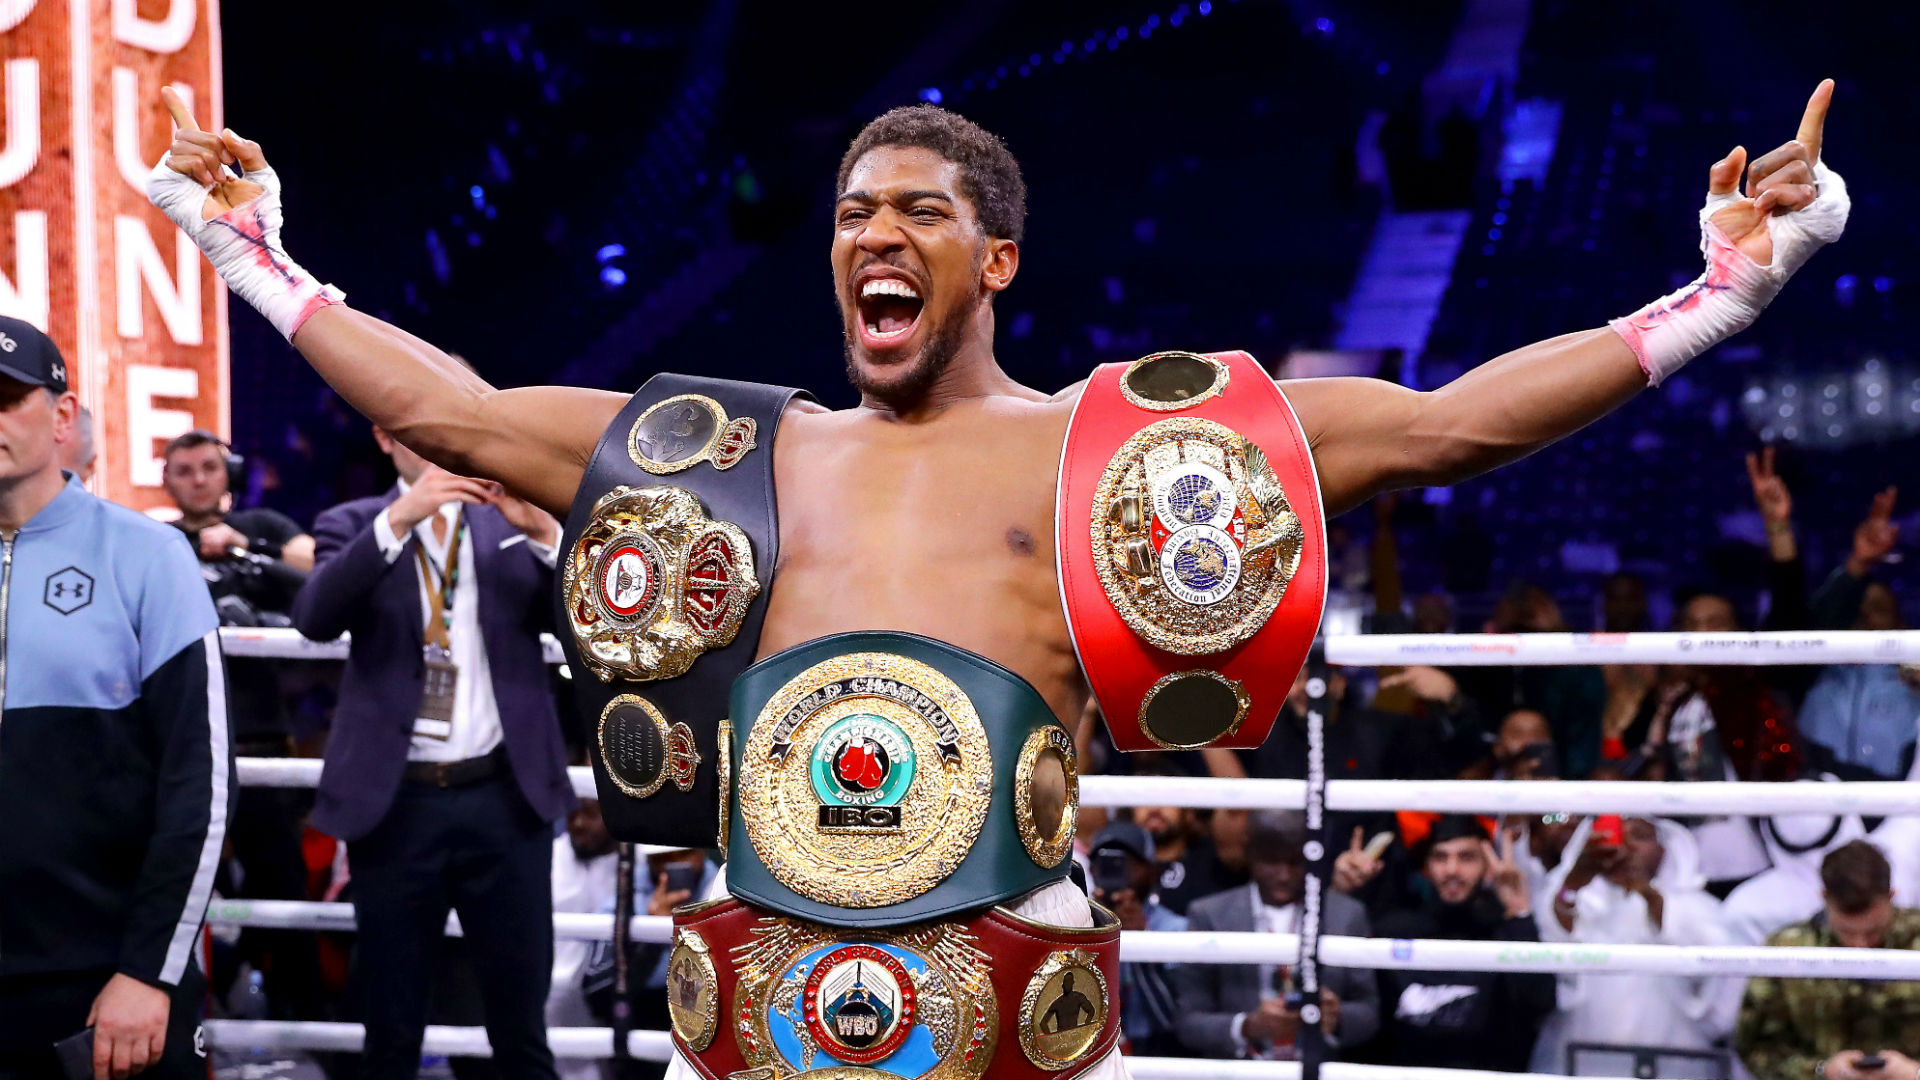 It's hard being champion - Joshua knows he will always need to prove himself